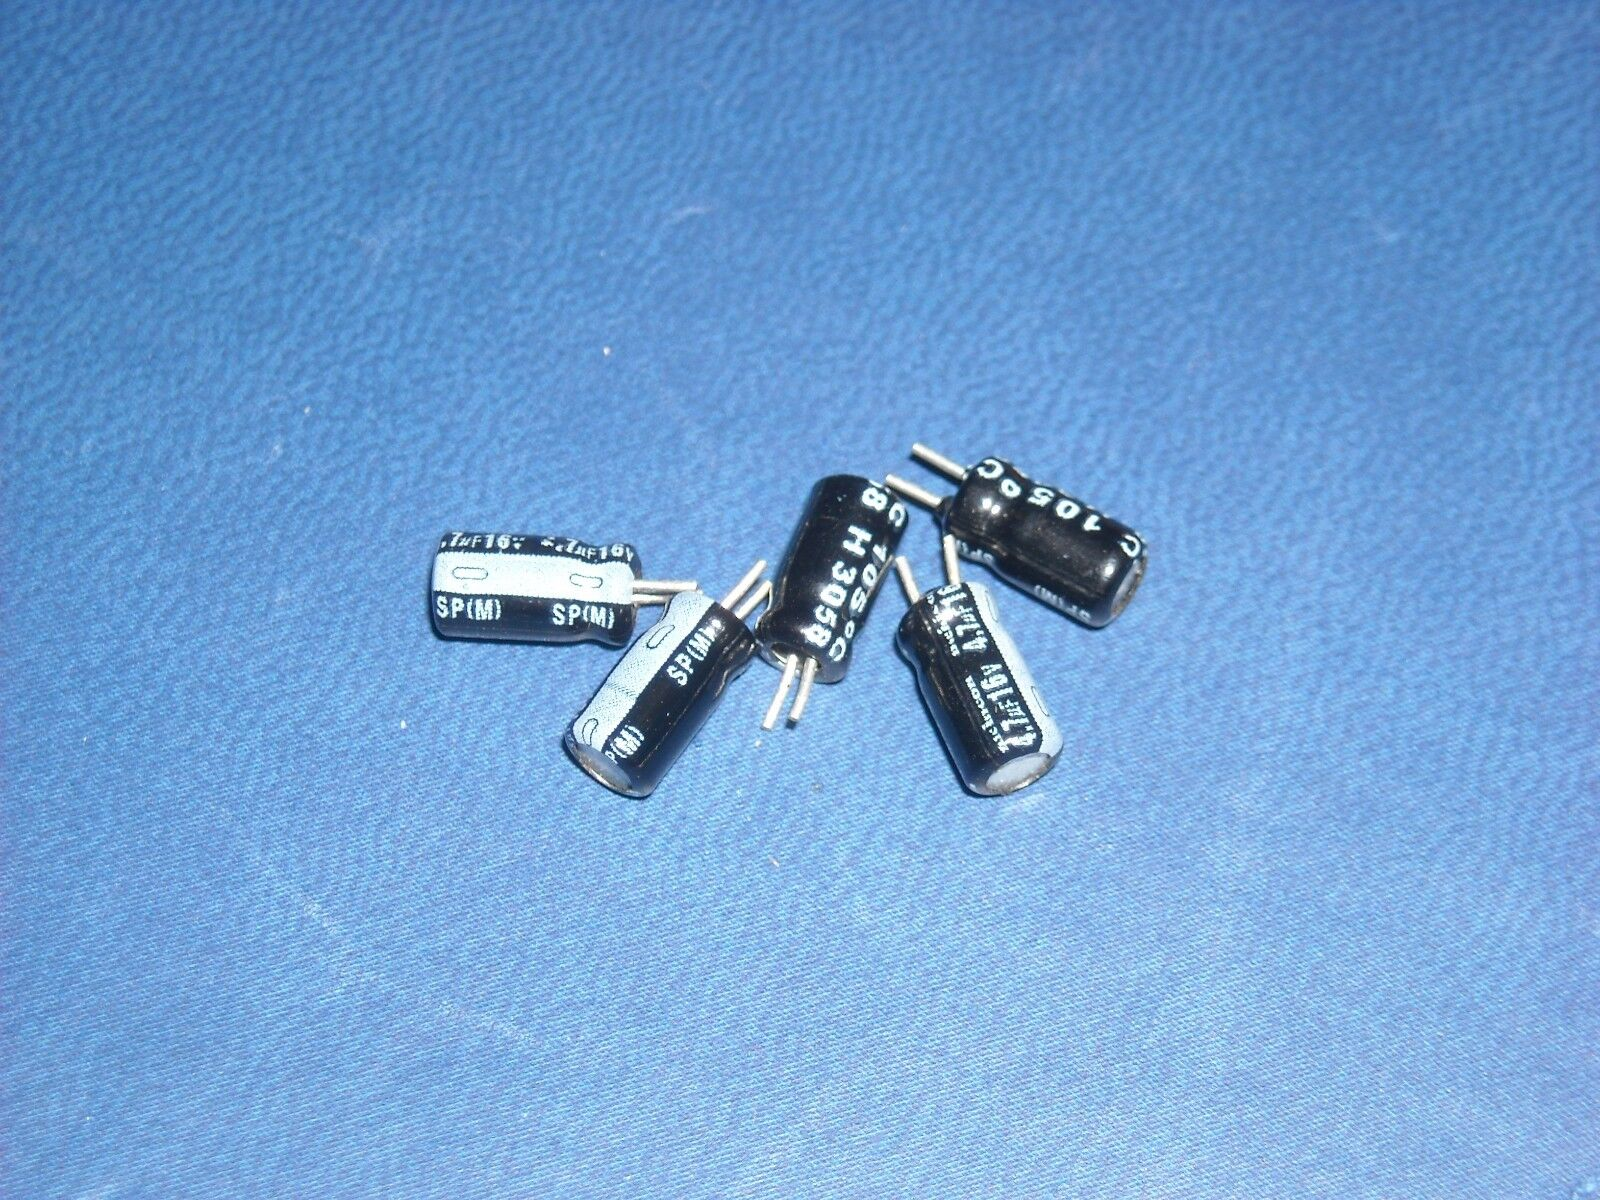 4 x Nichicon NU 25V 47UF Aluminum solid Ultra Low ESR High reliability Capacitor